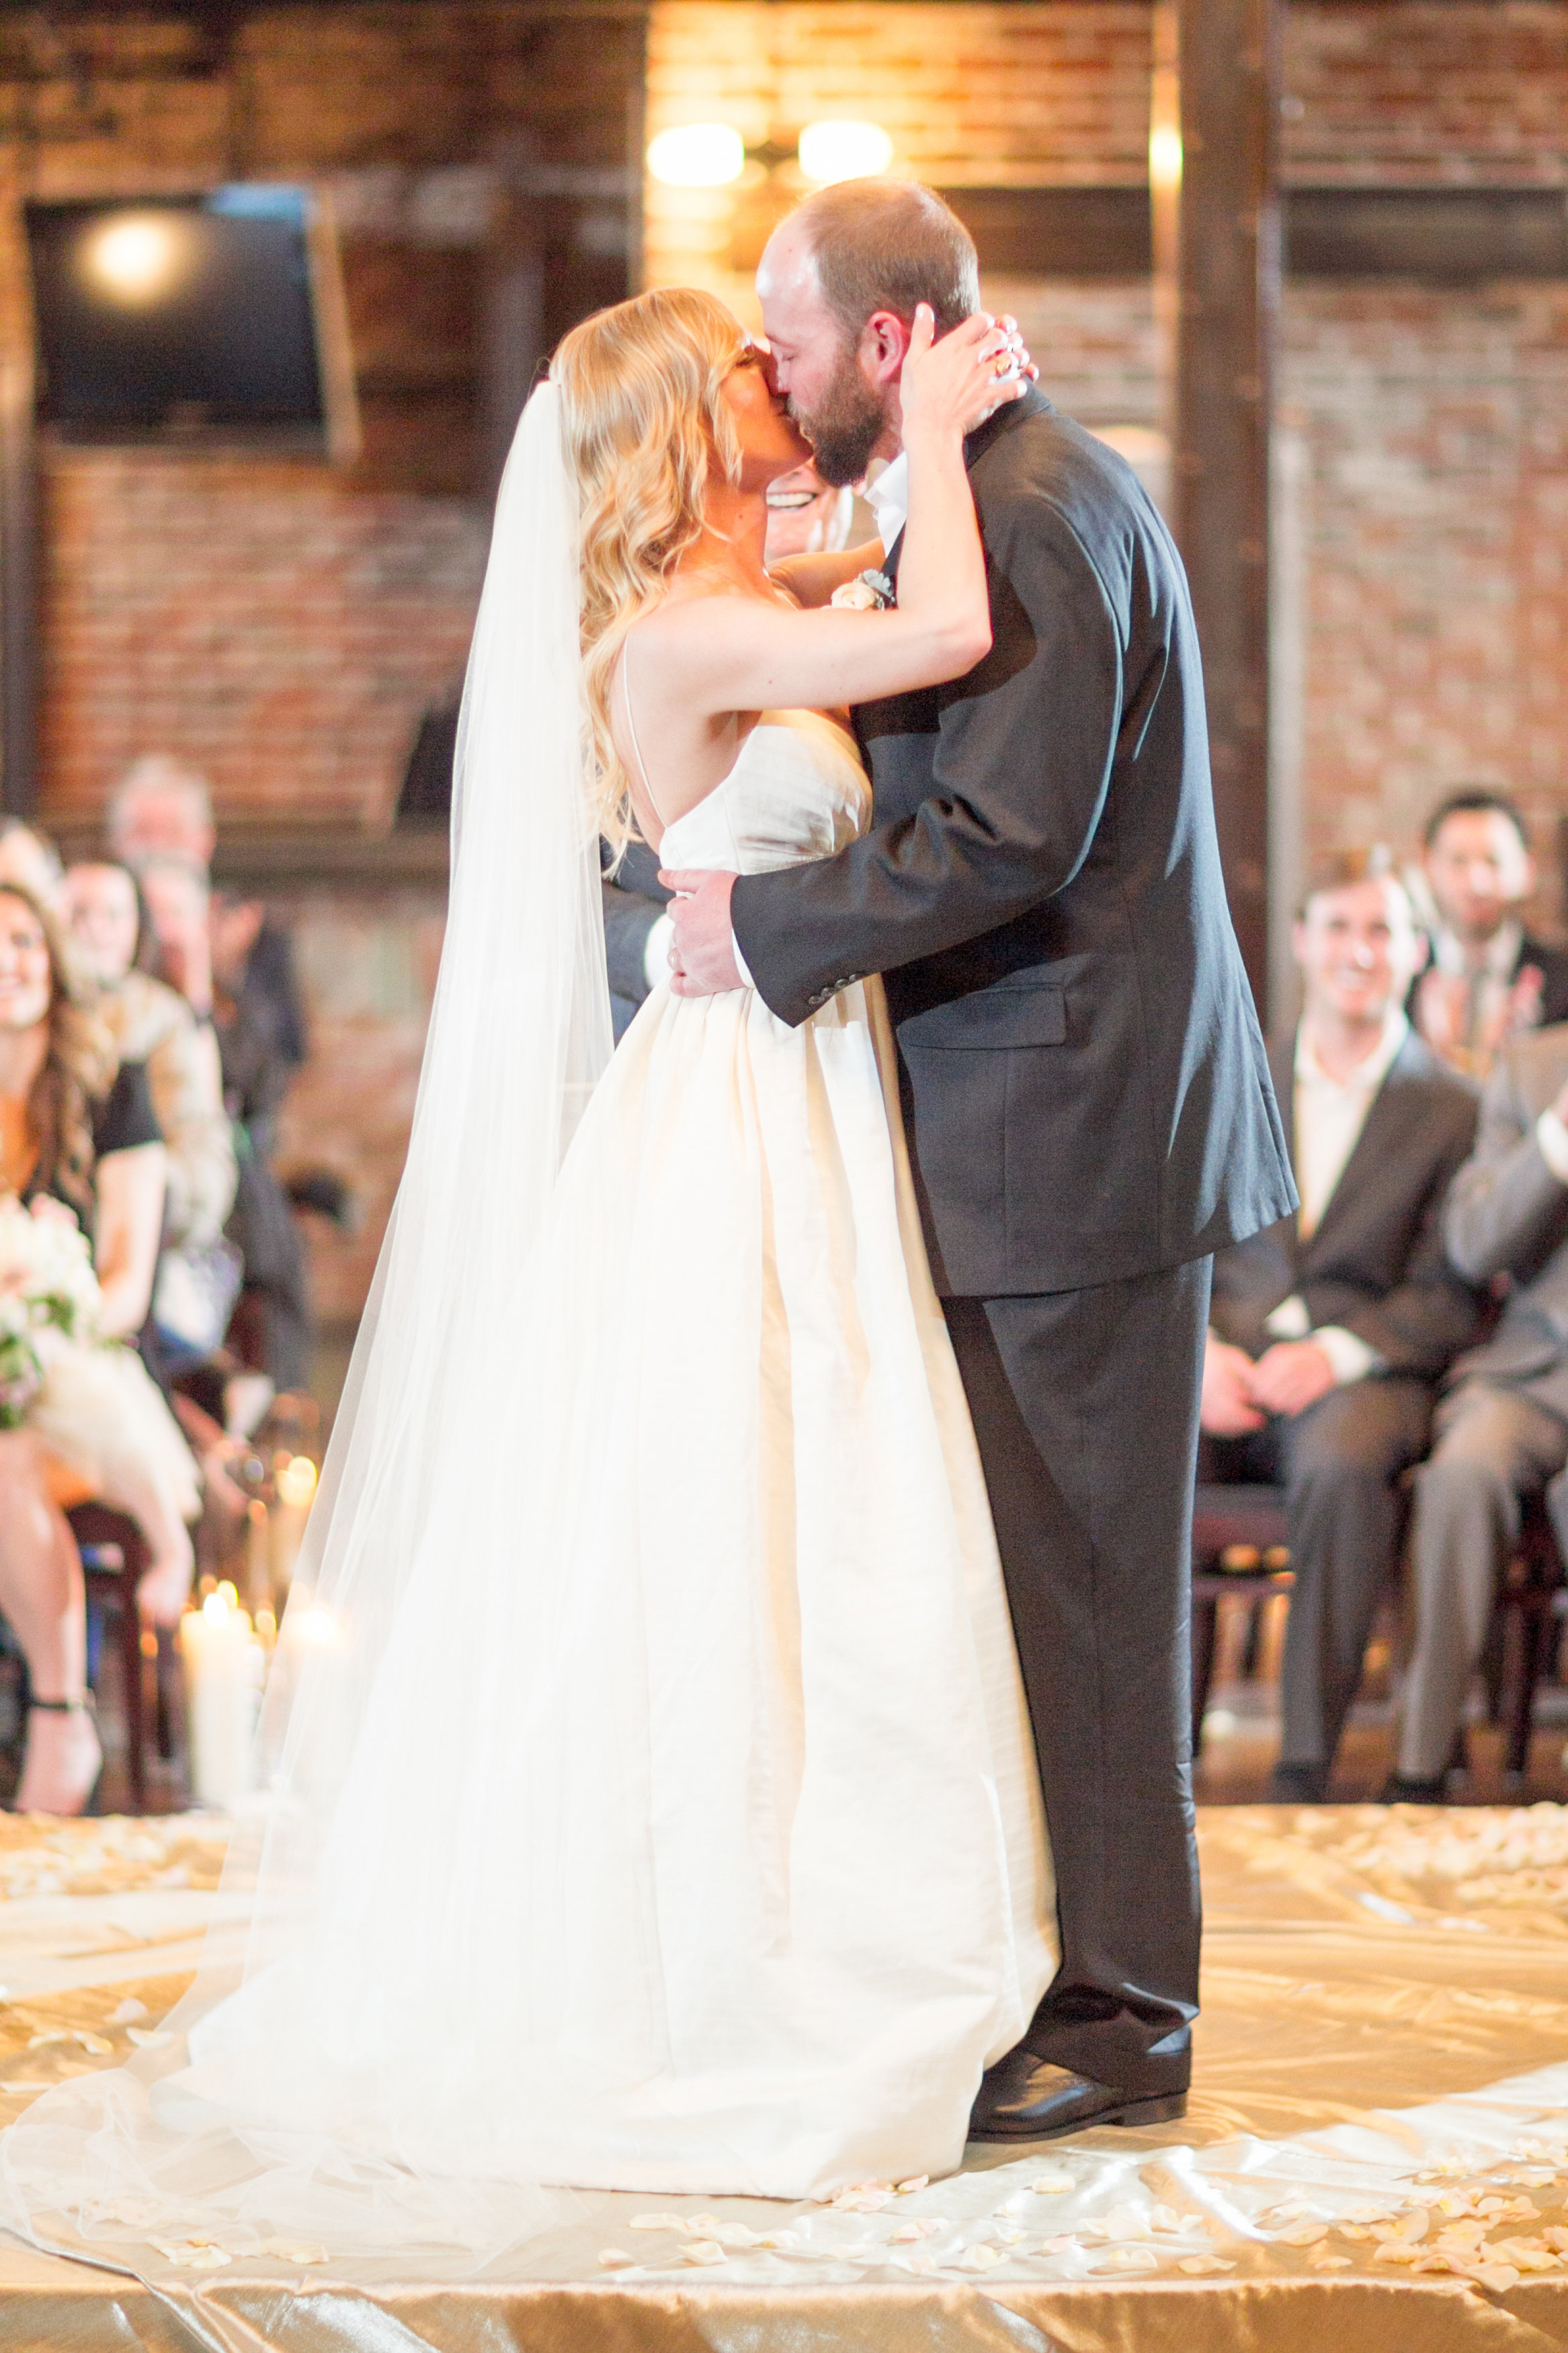 View More: http://mikelarson.pass.us/vincealixwedding